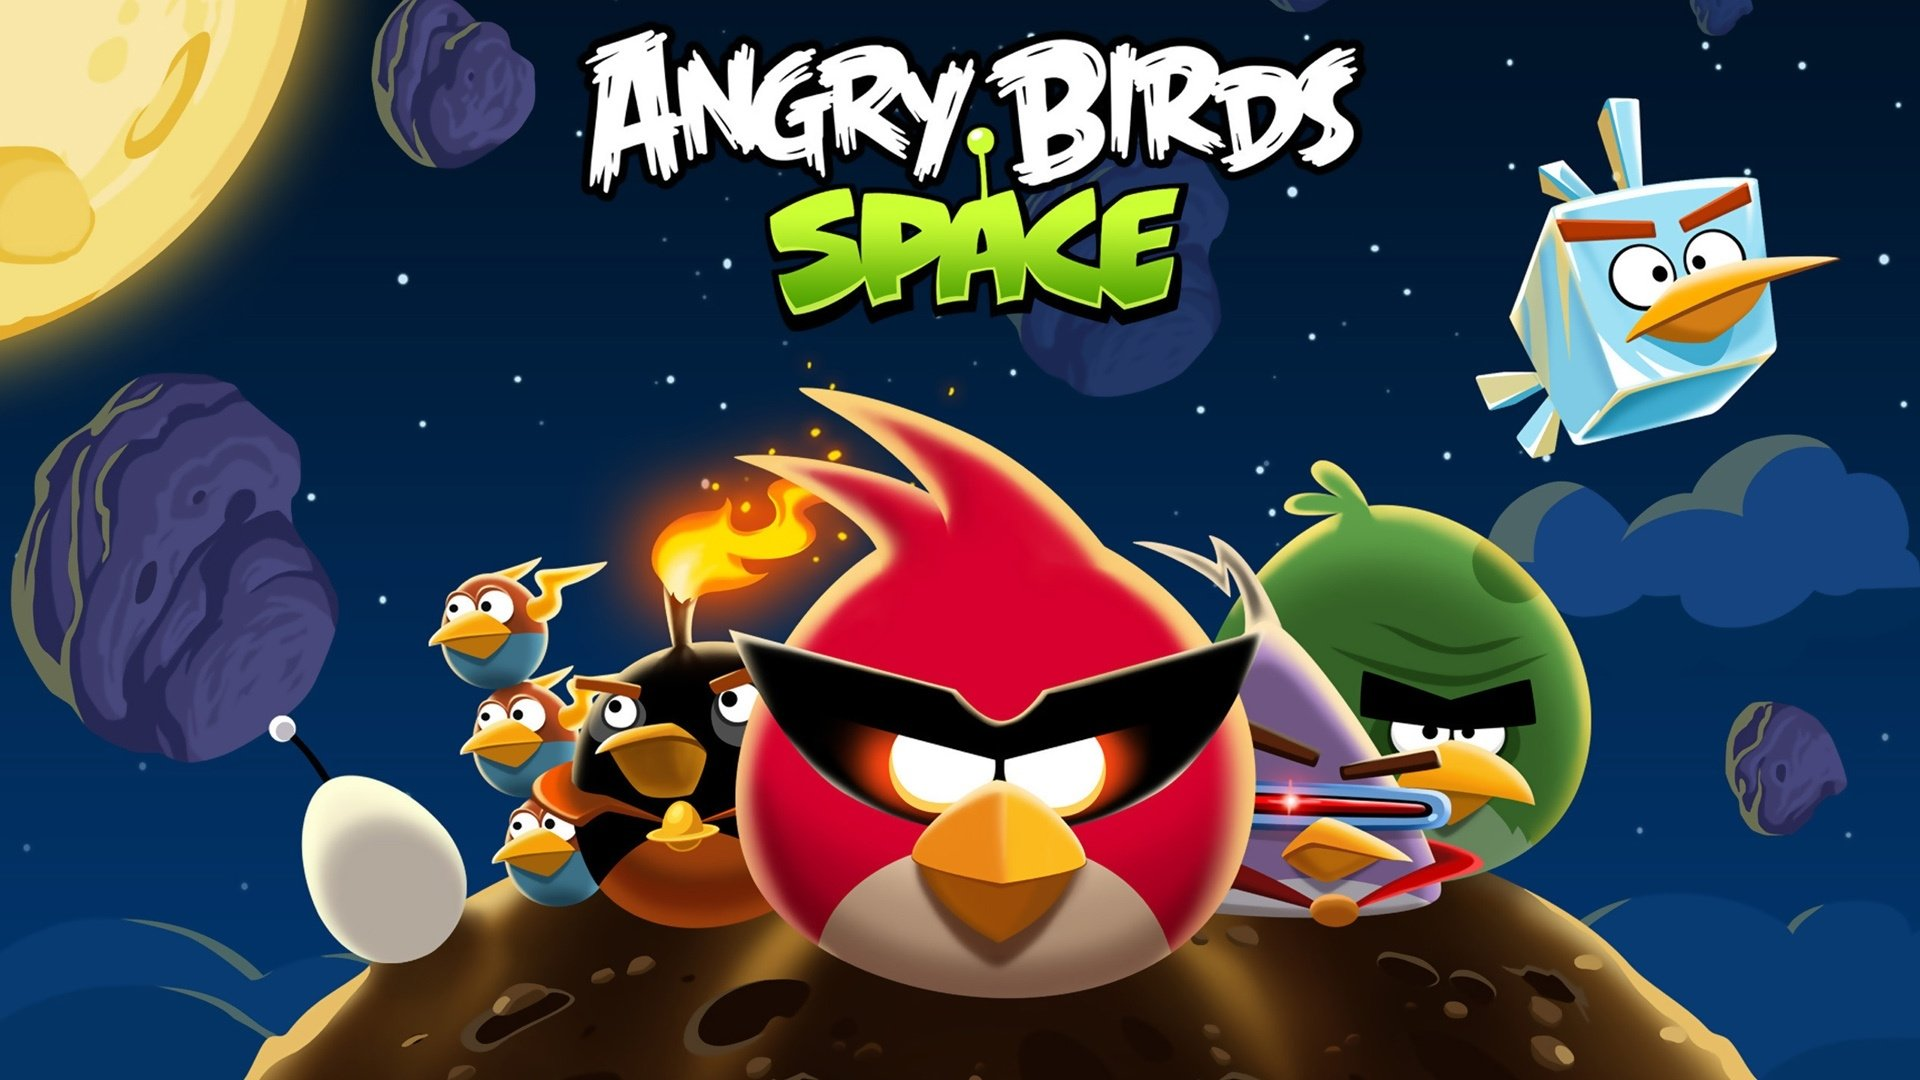 18 Angry Birds Space HD Wallpapers